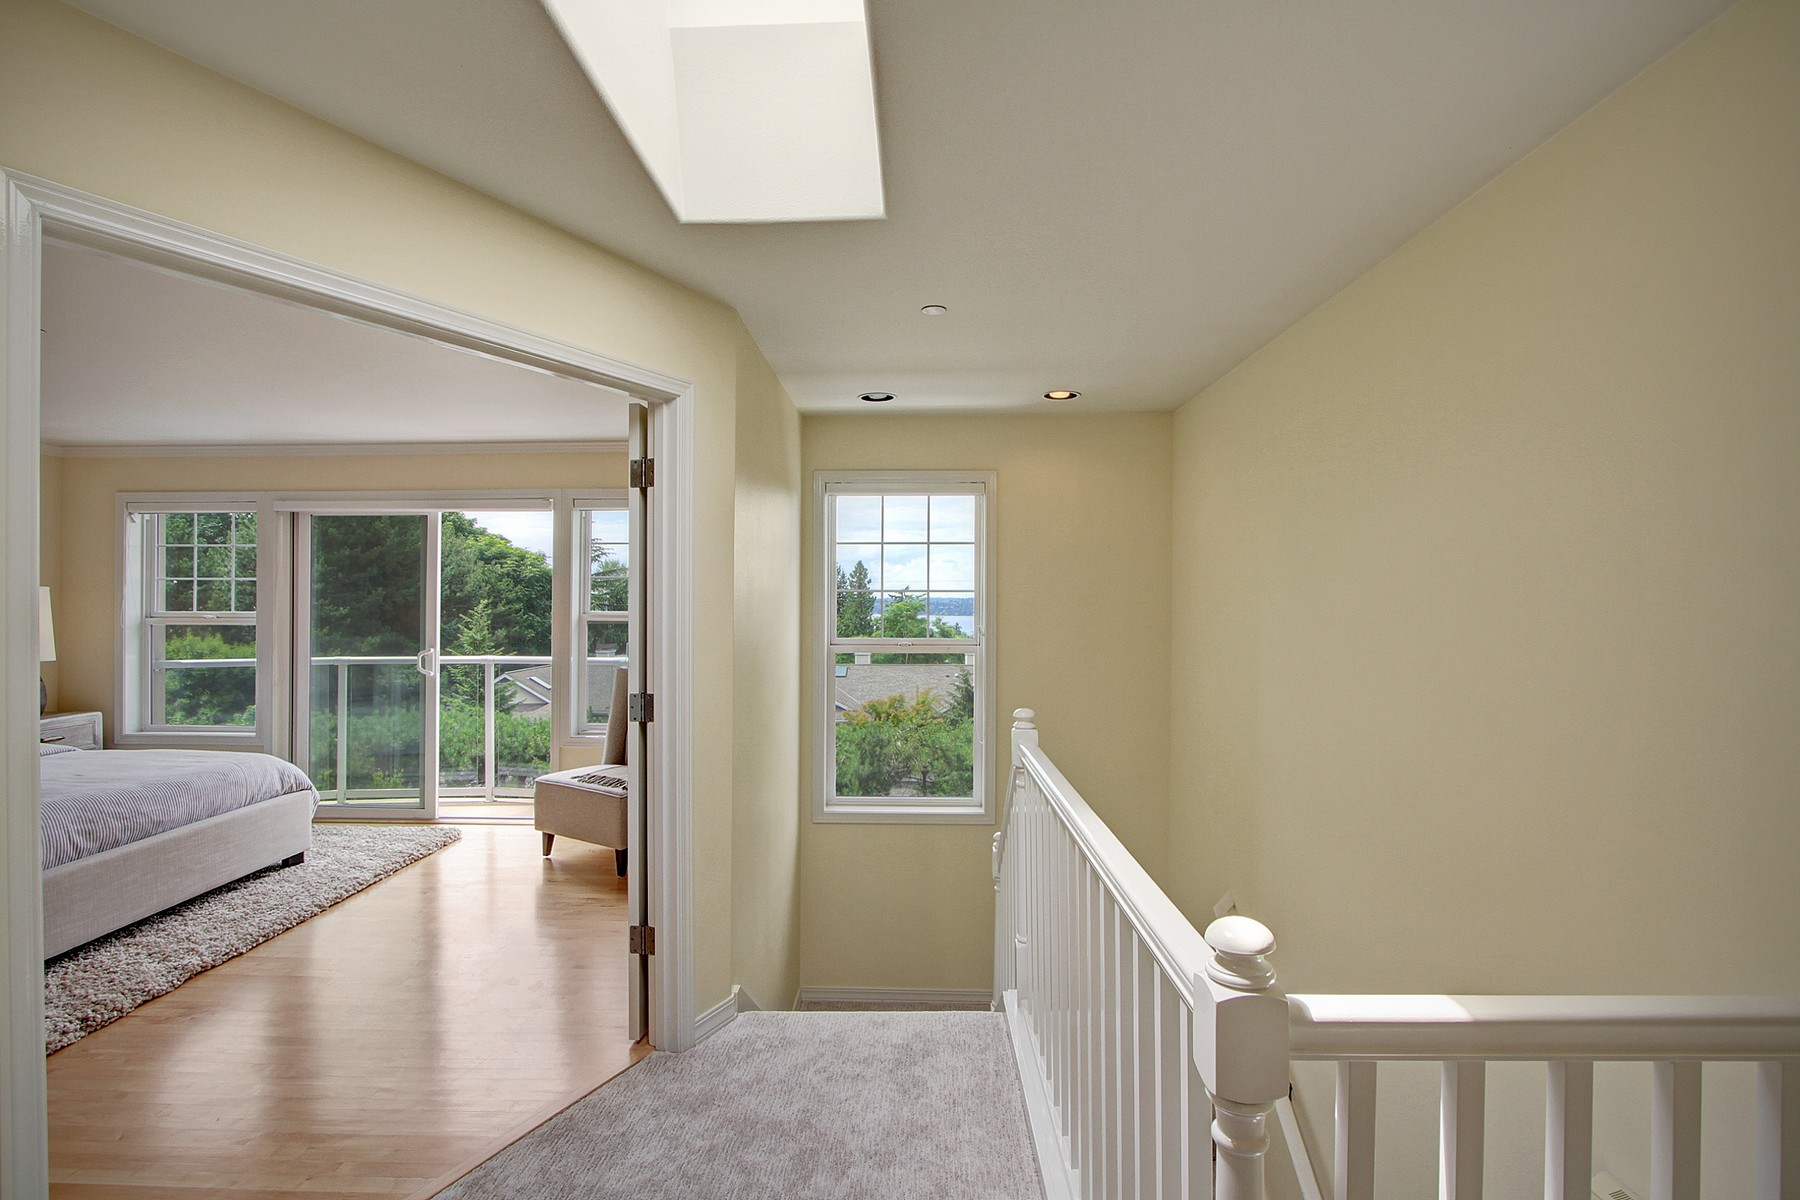 Additional photo for property listing at Houghton Townhome 703 9th Ave S Kirkland, Washington 98033 United States